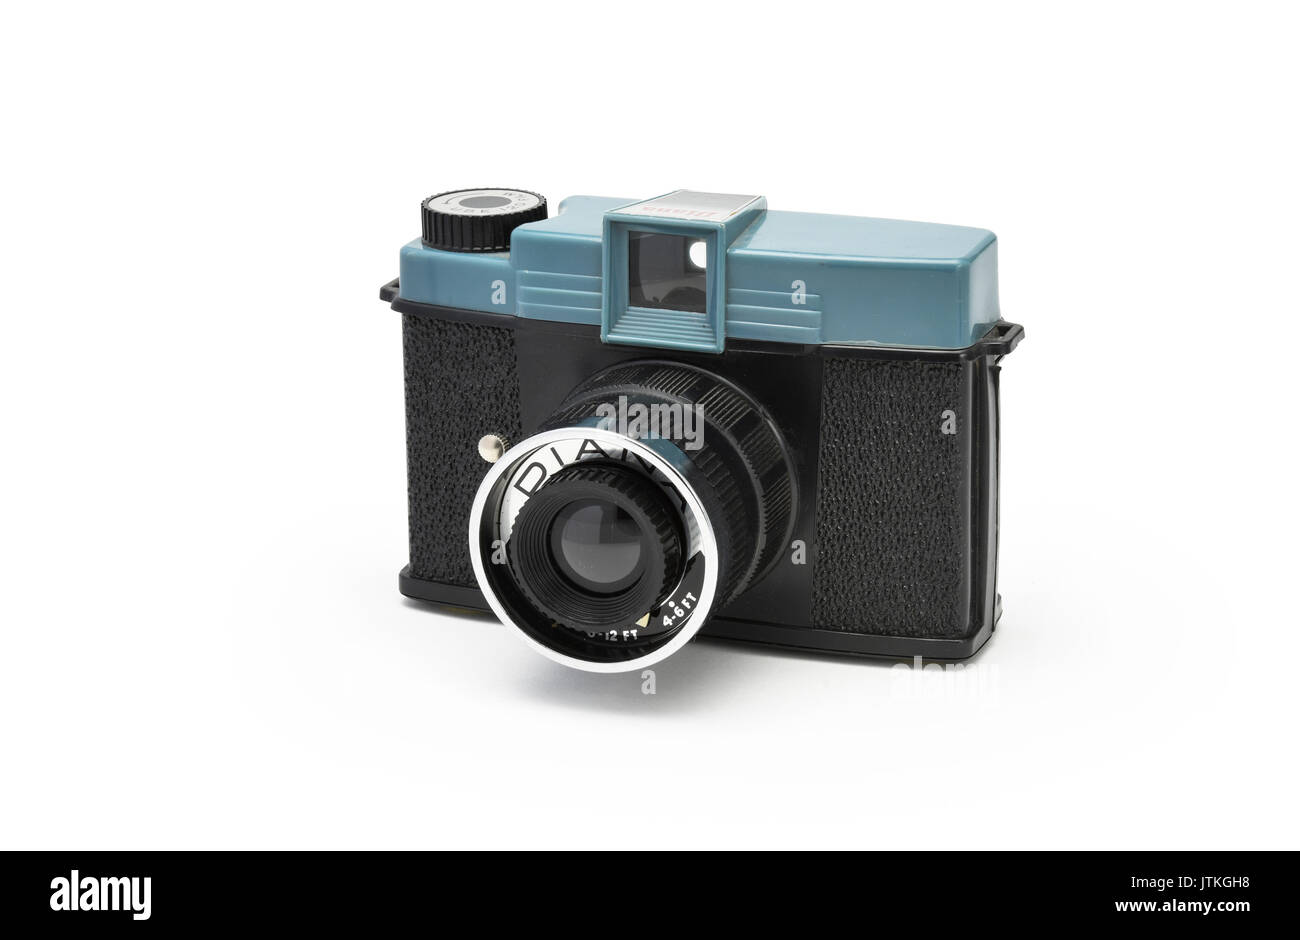 Vintage Diana Camera from the 1960's and 1970's - Stock Image